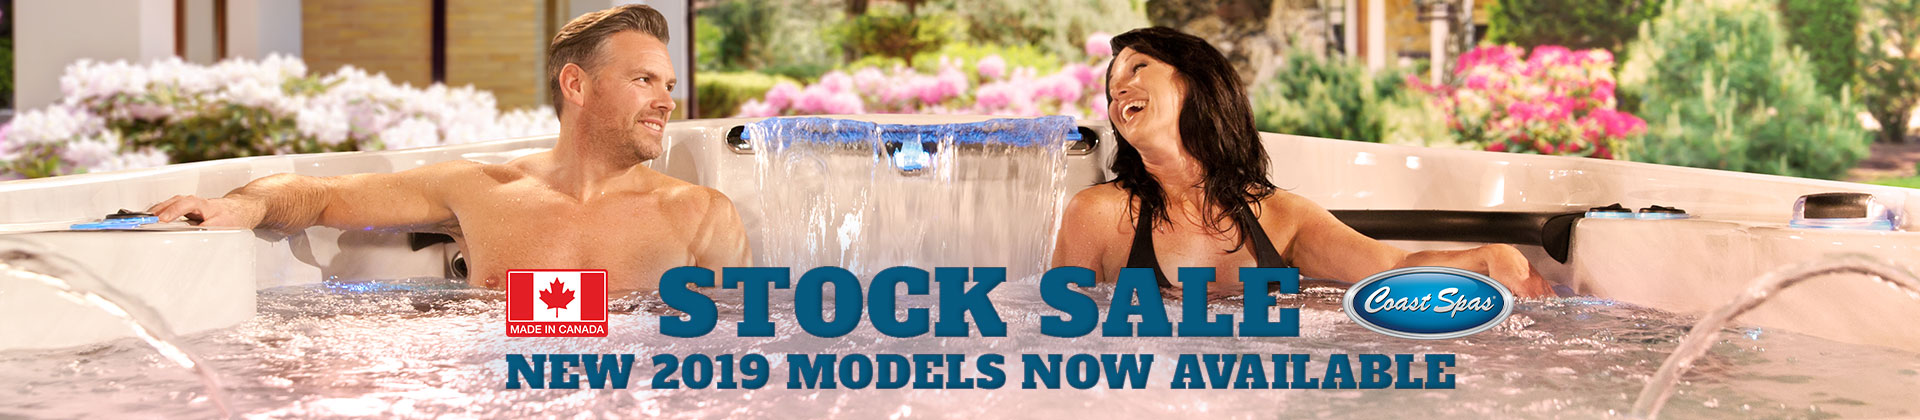 Hot Tub Deals January Offers